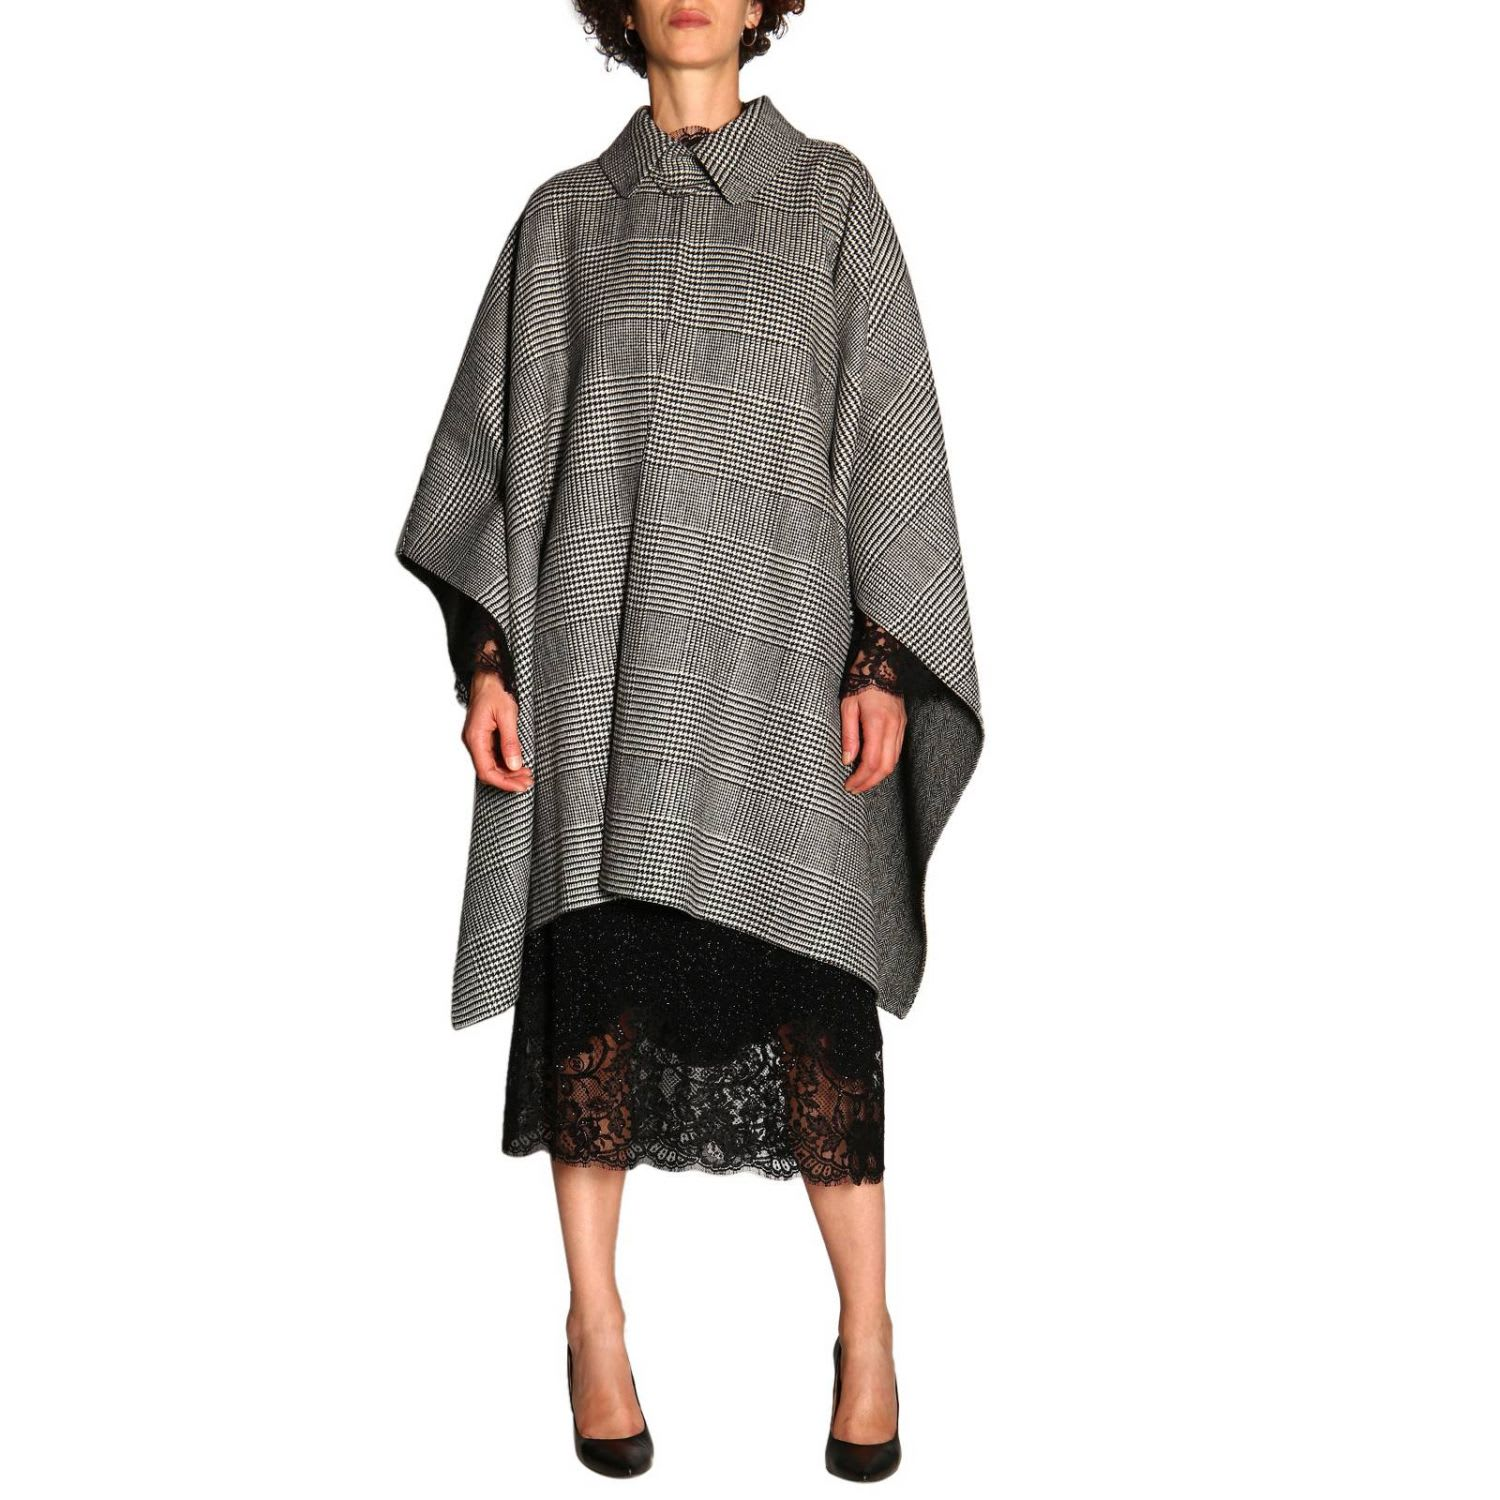 Photo of  Ermanno Scervino Cape Cape Women Ermanno Scervino- shop Ermanno Scervino jackets online sales